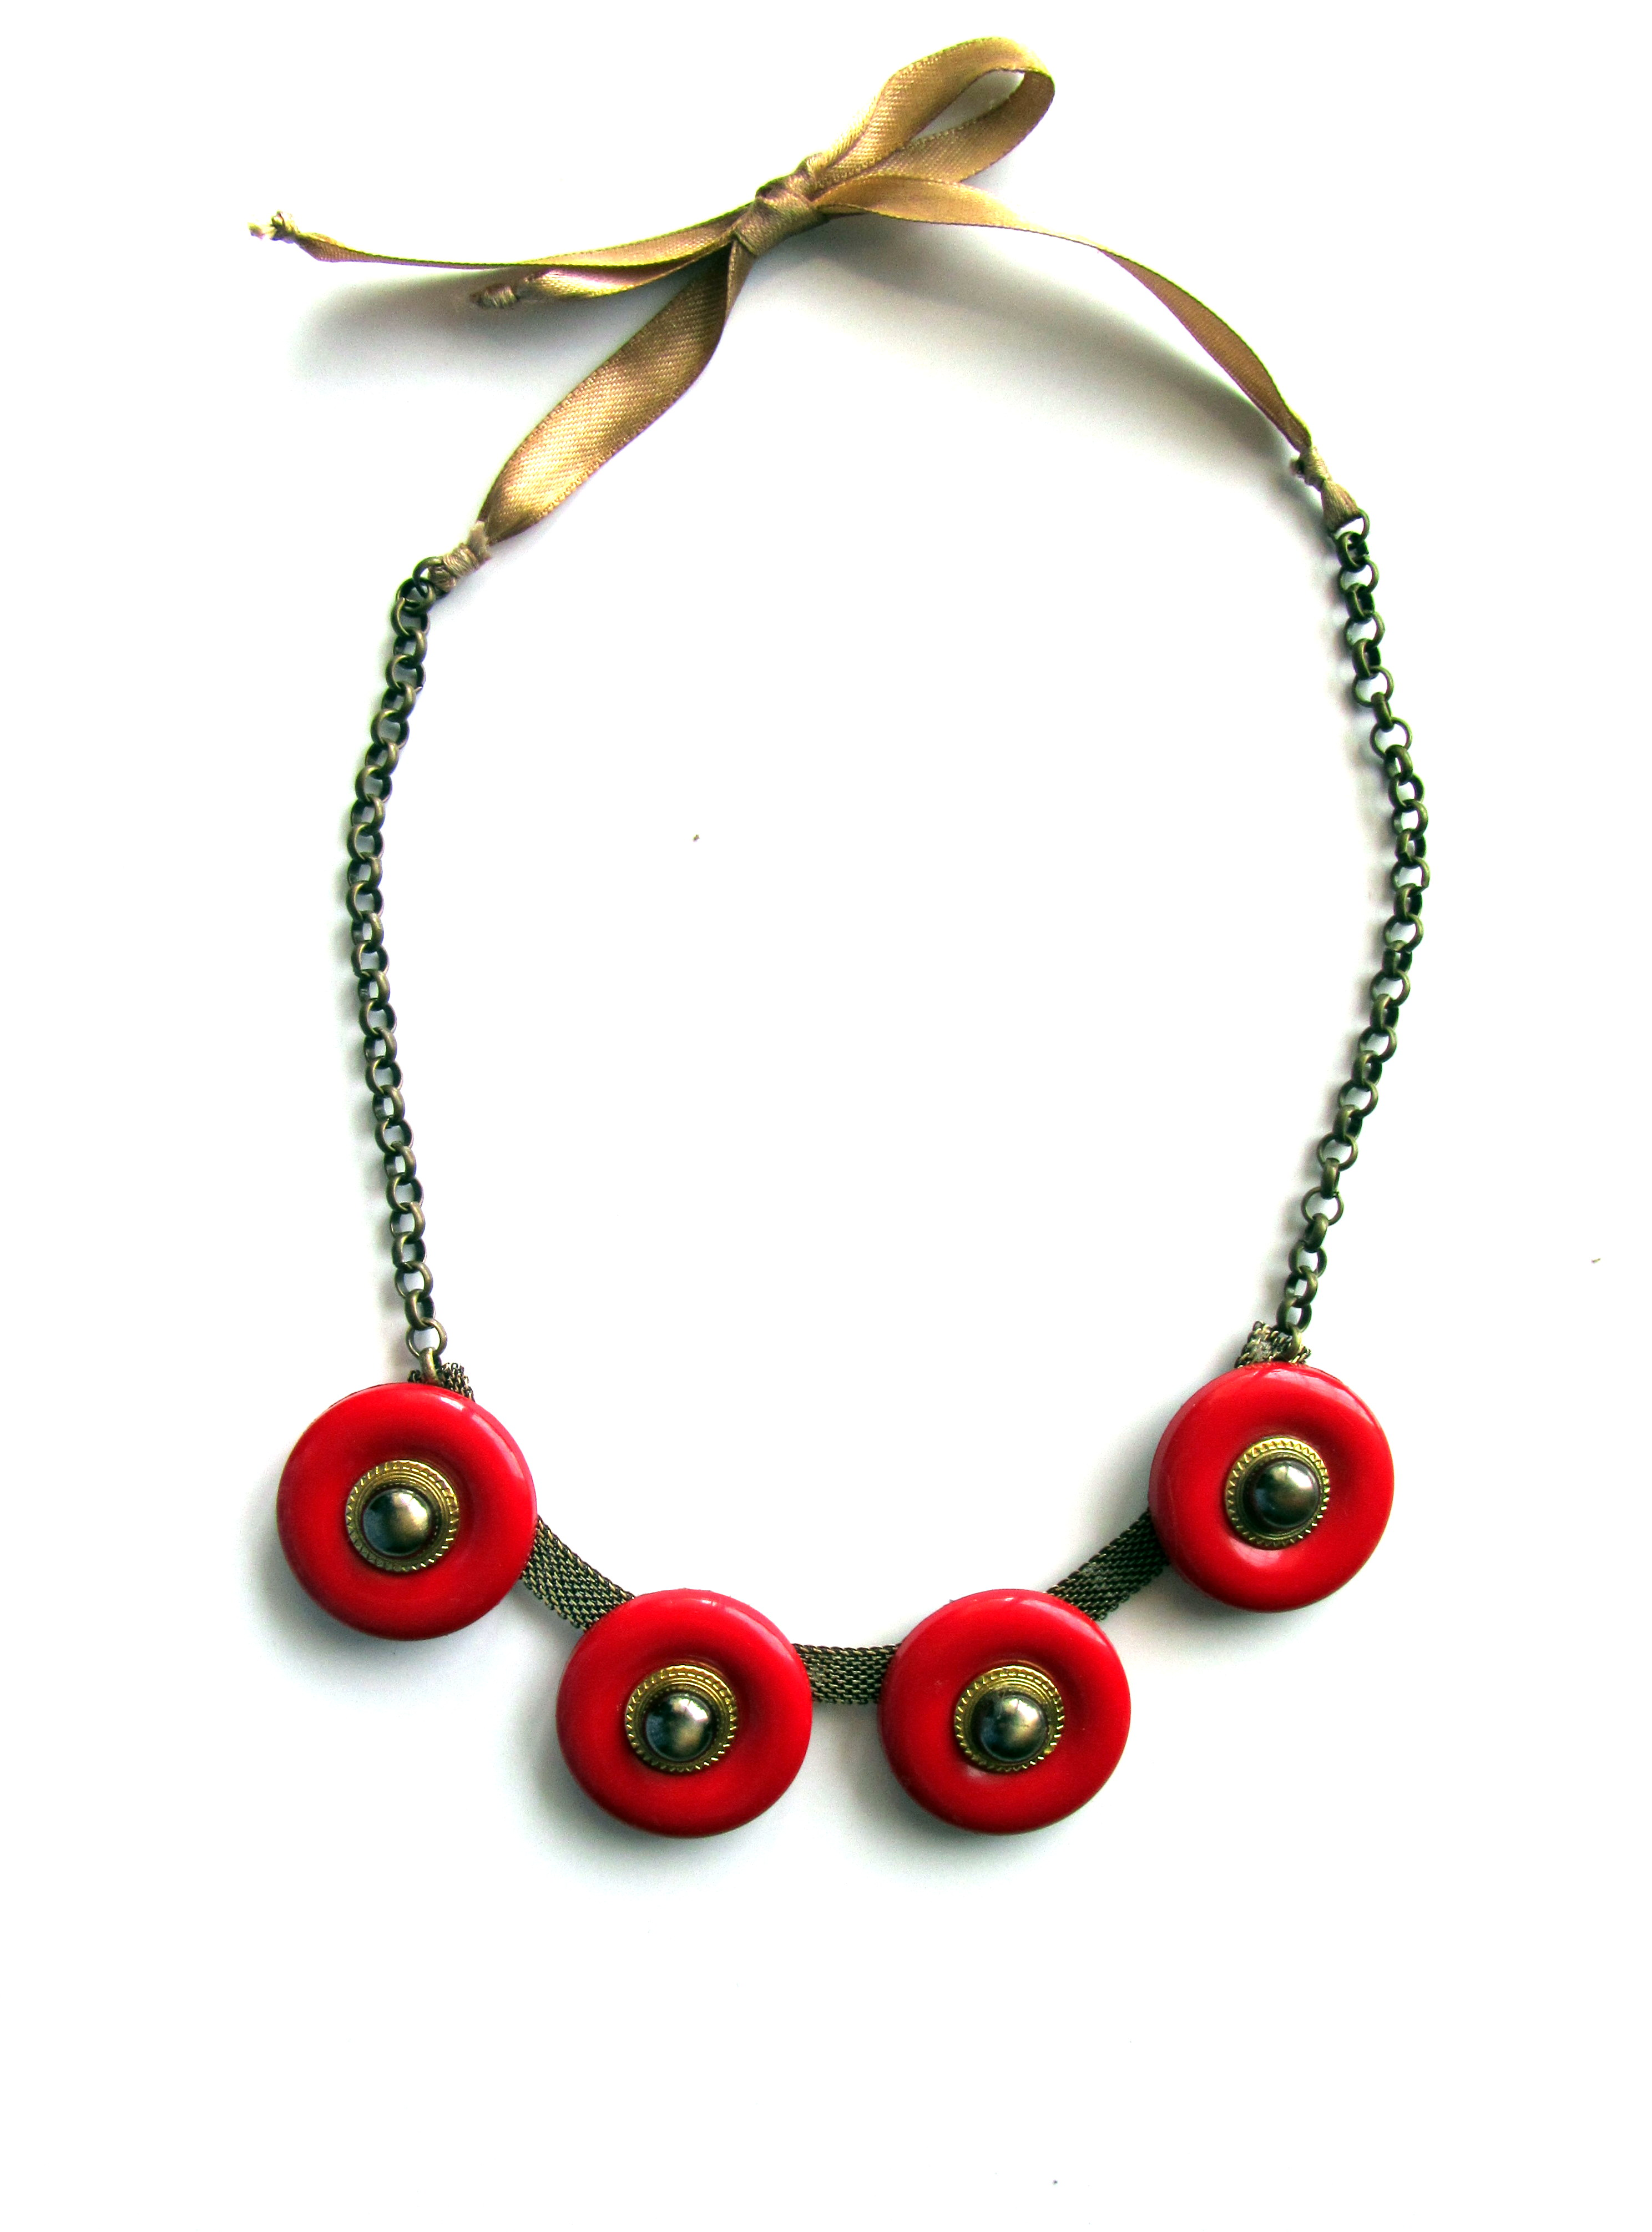 A bright red  plastic necklace